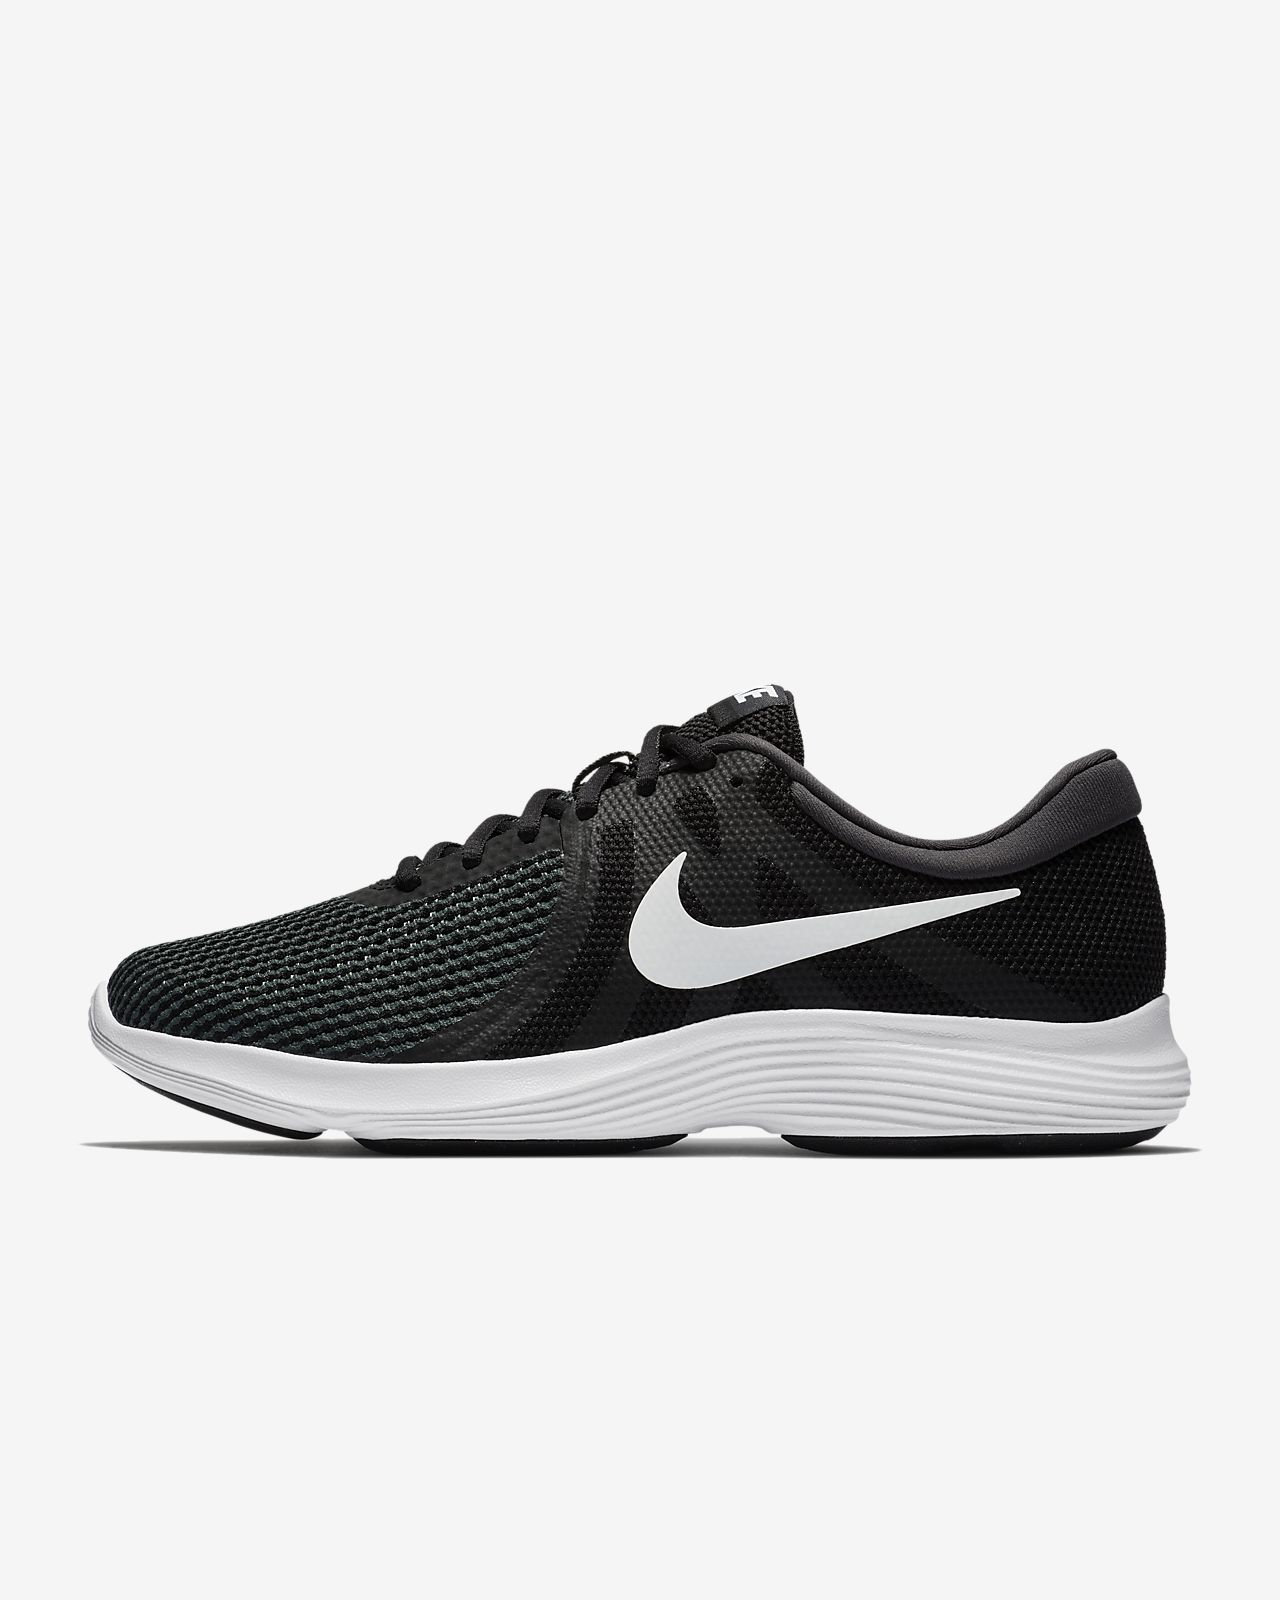 innovative design e8f68 10837 ... Nike Revolution 4 Men s Running Shoe